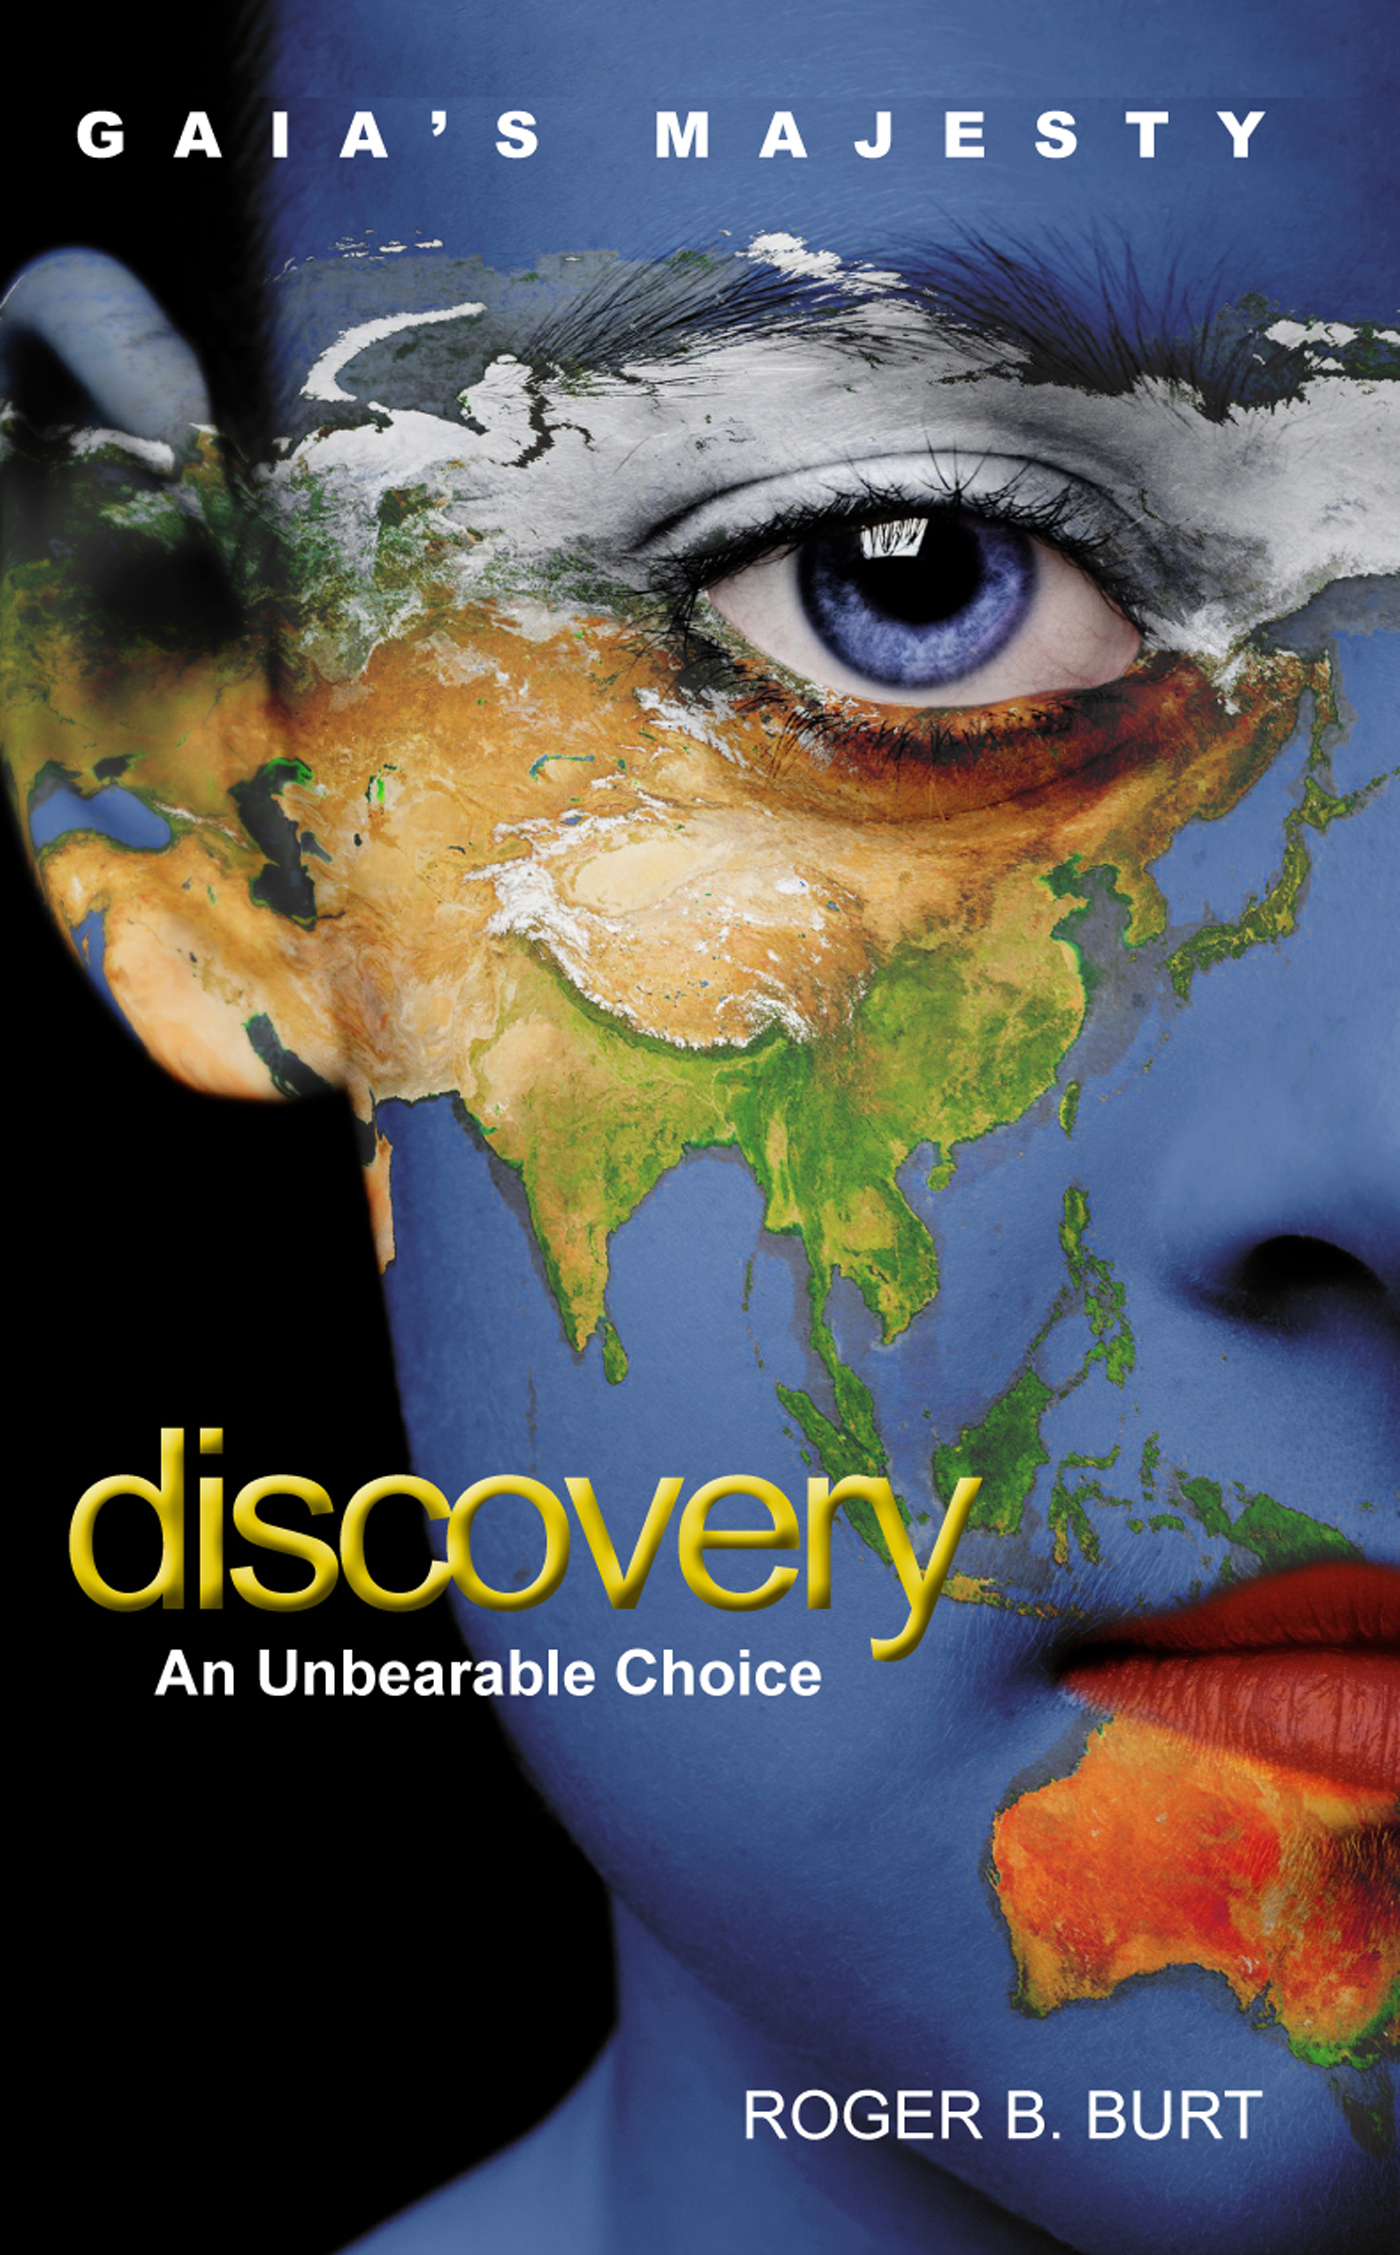 Gaias Majesty: Discovery - An Unbearable Choice Roger B. Burt